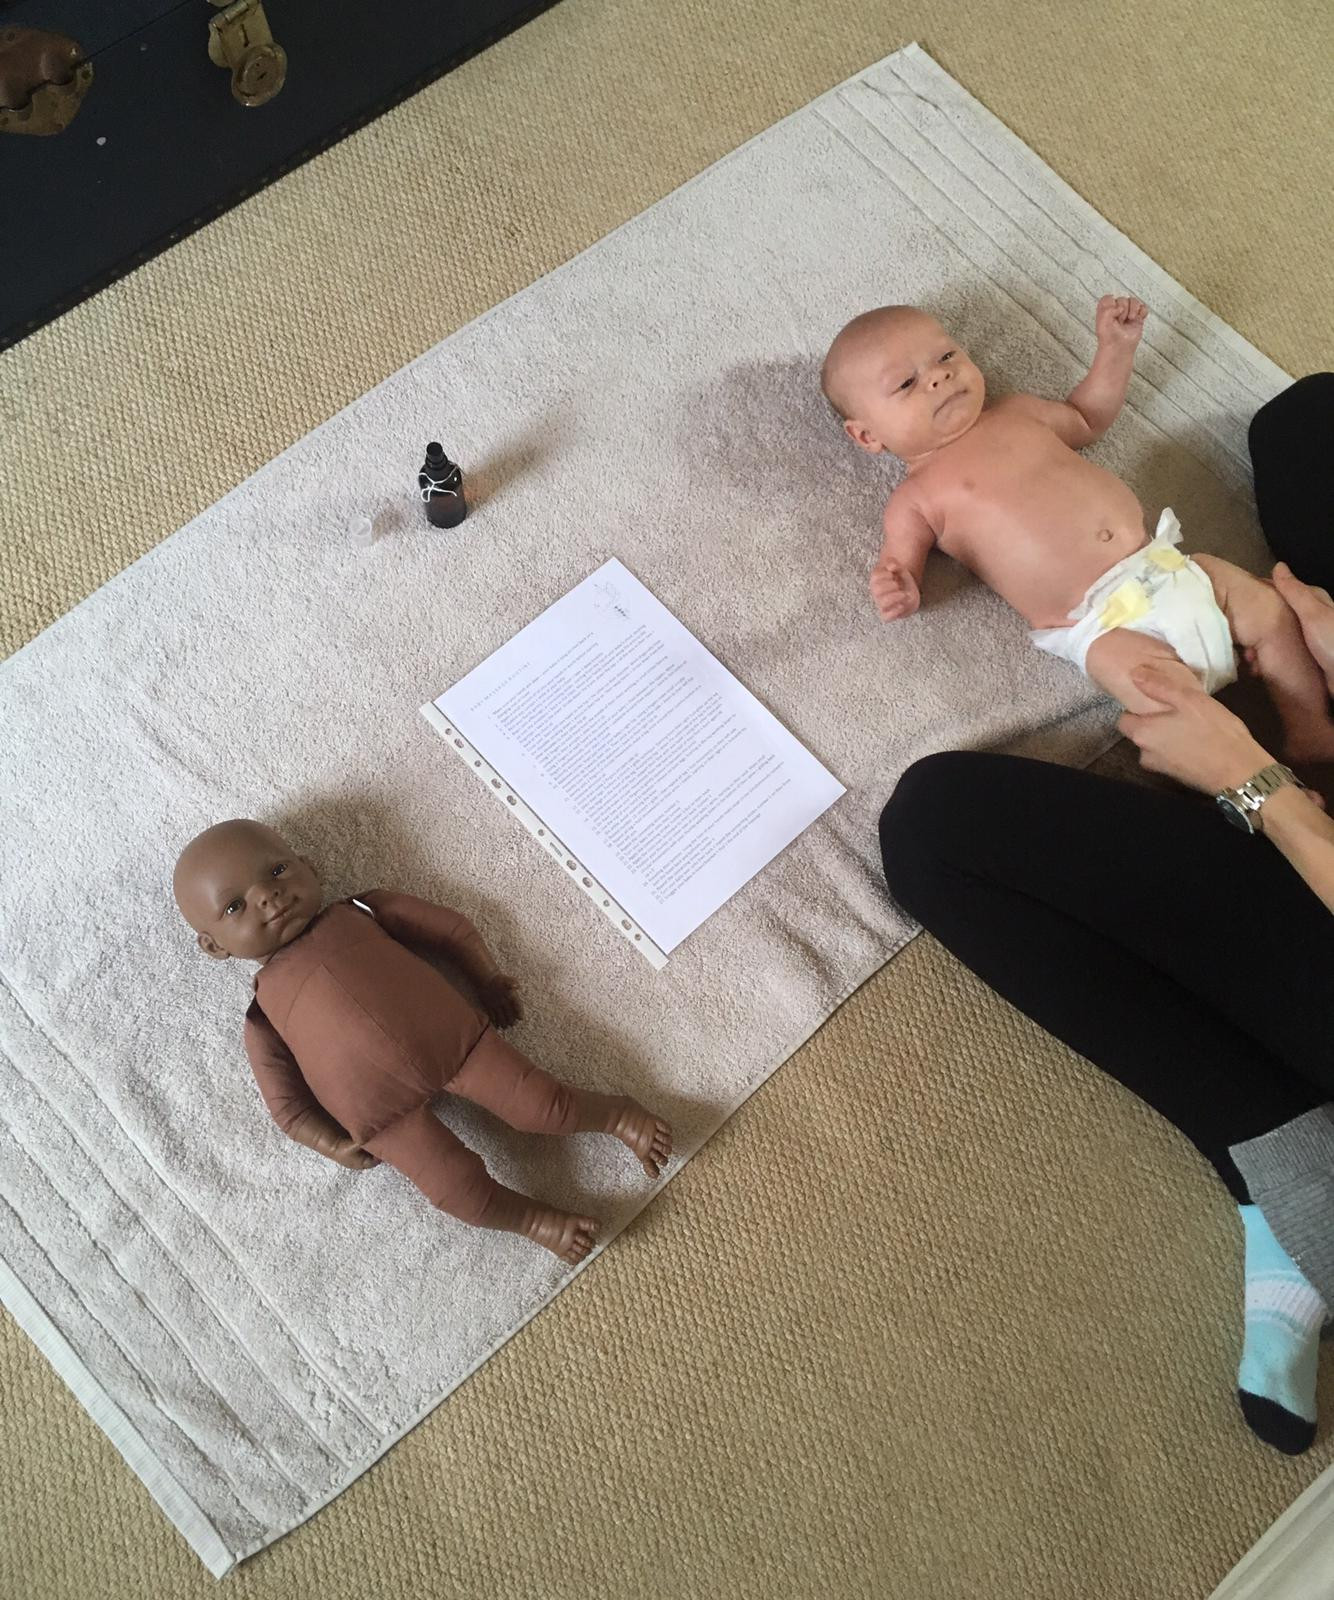 BABY MASSAGE TUITION